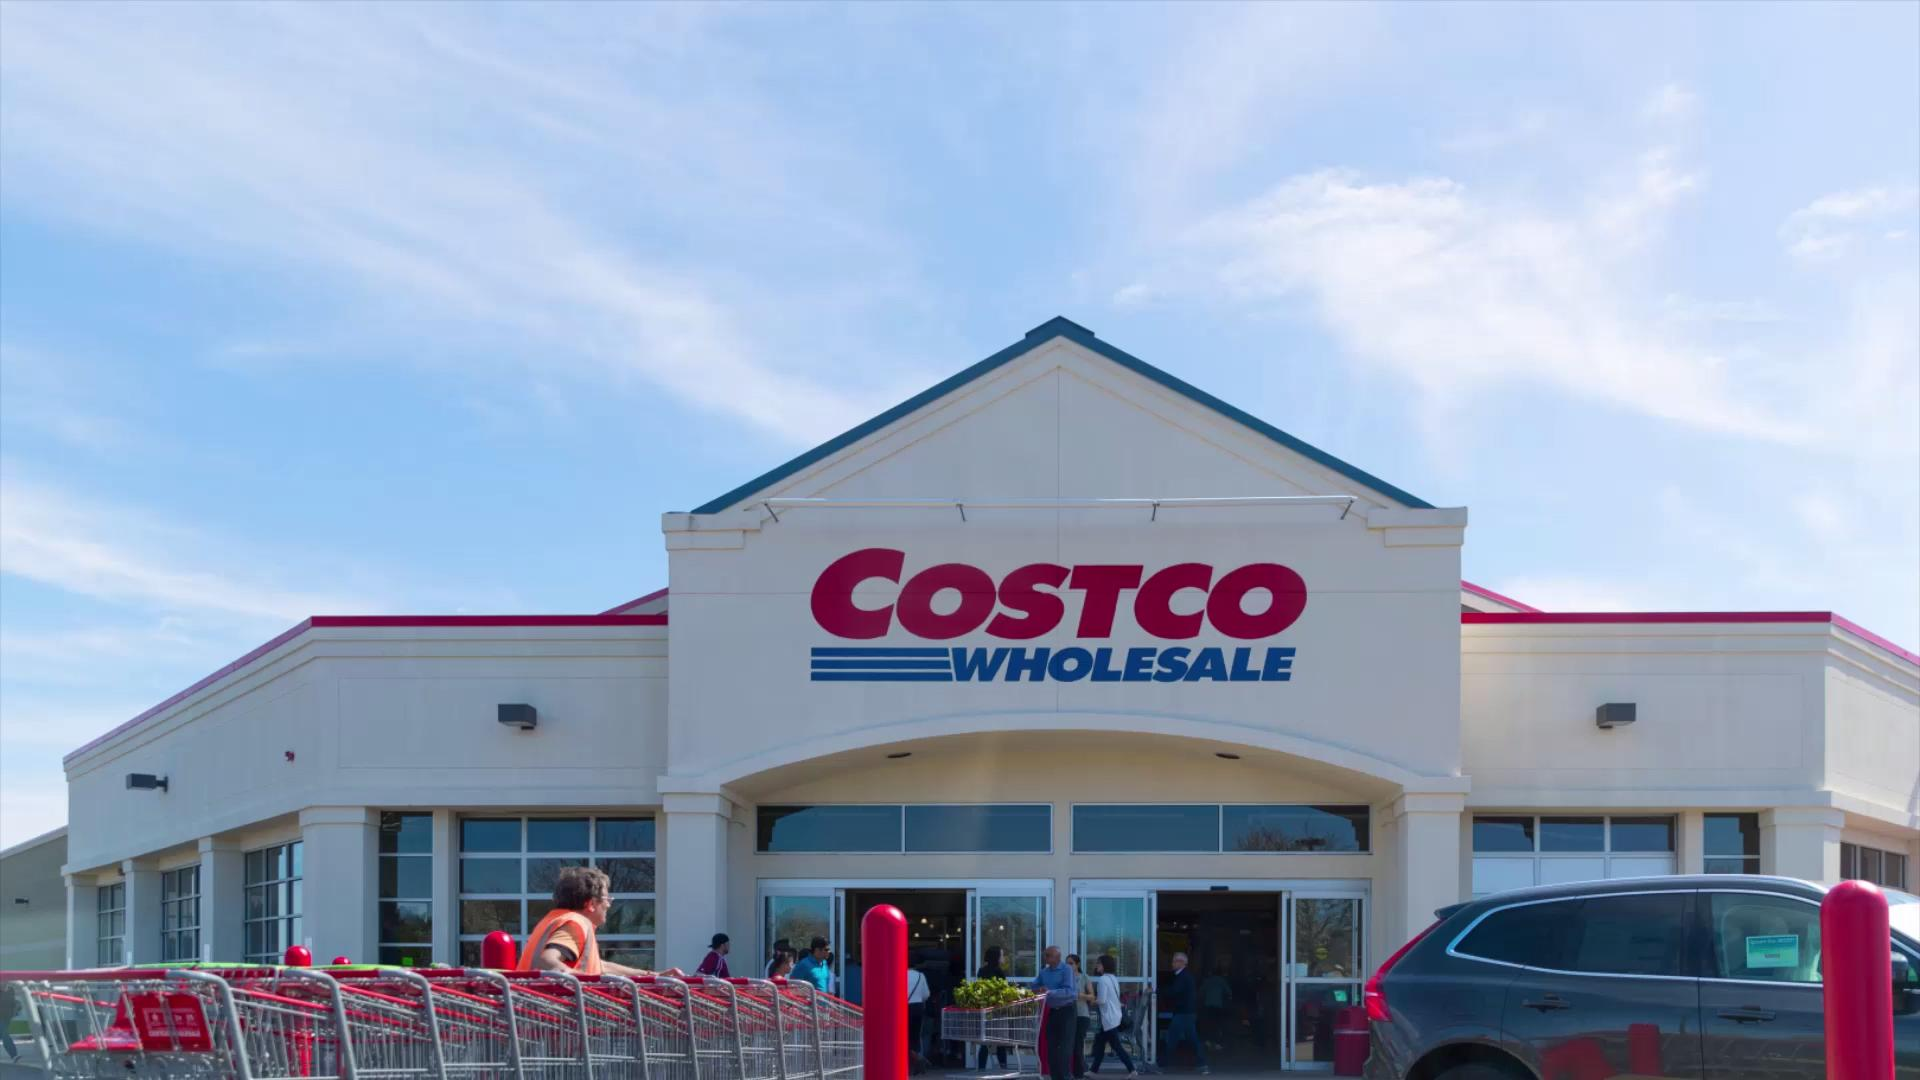 10 High-Protein Snacks You Can Buy at Costco - Cooking Light